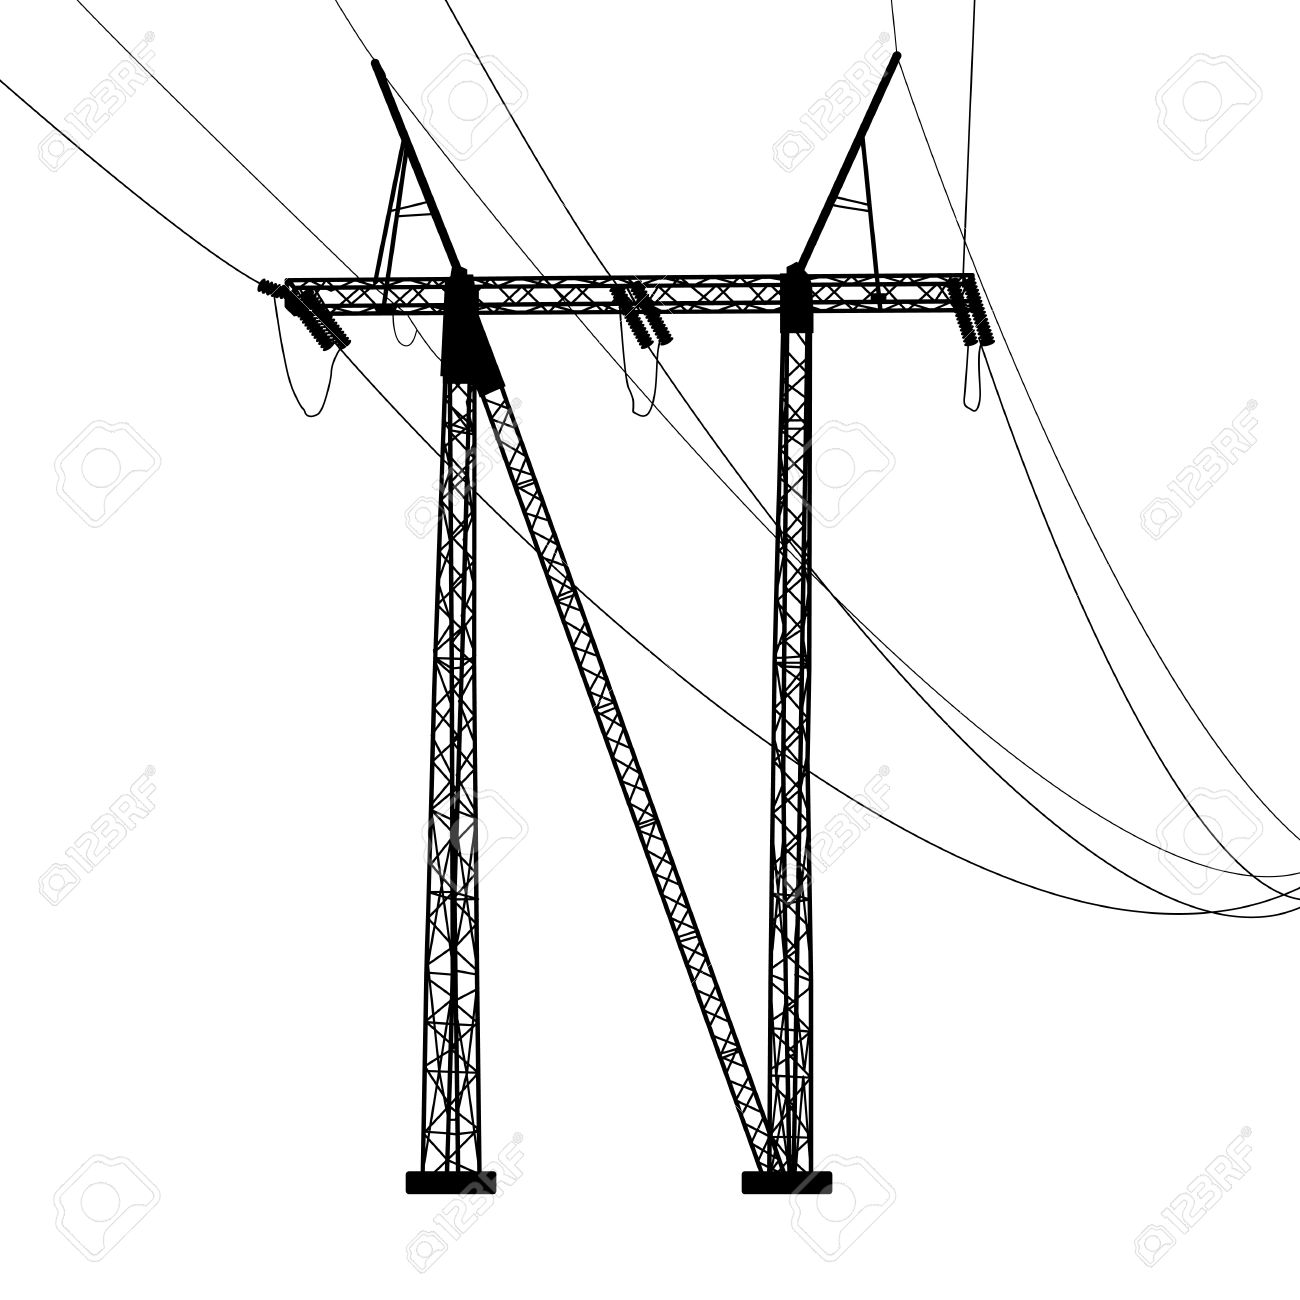 Power Lines Drawing At Getdrawings